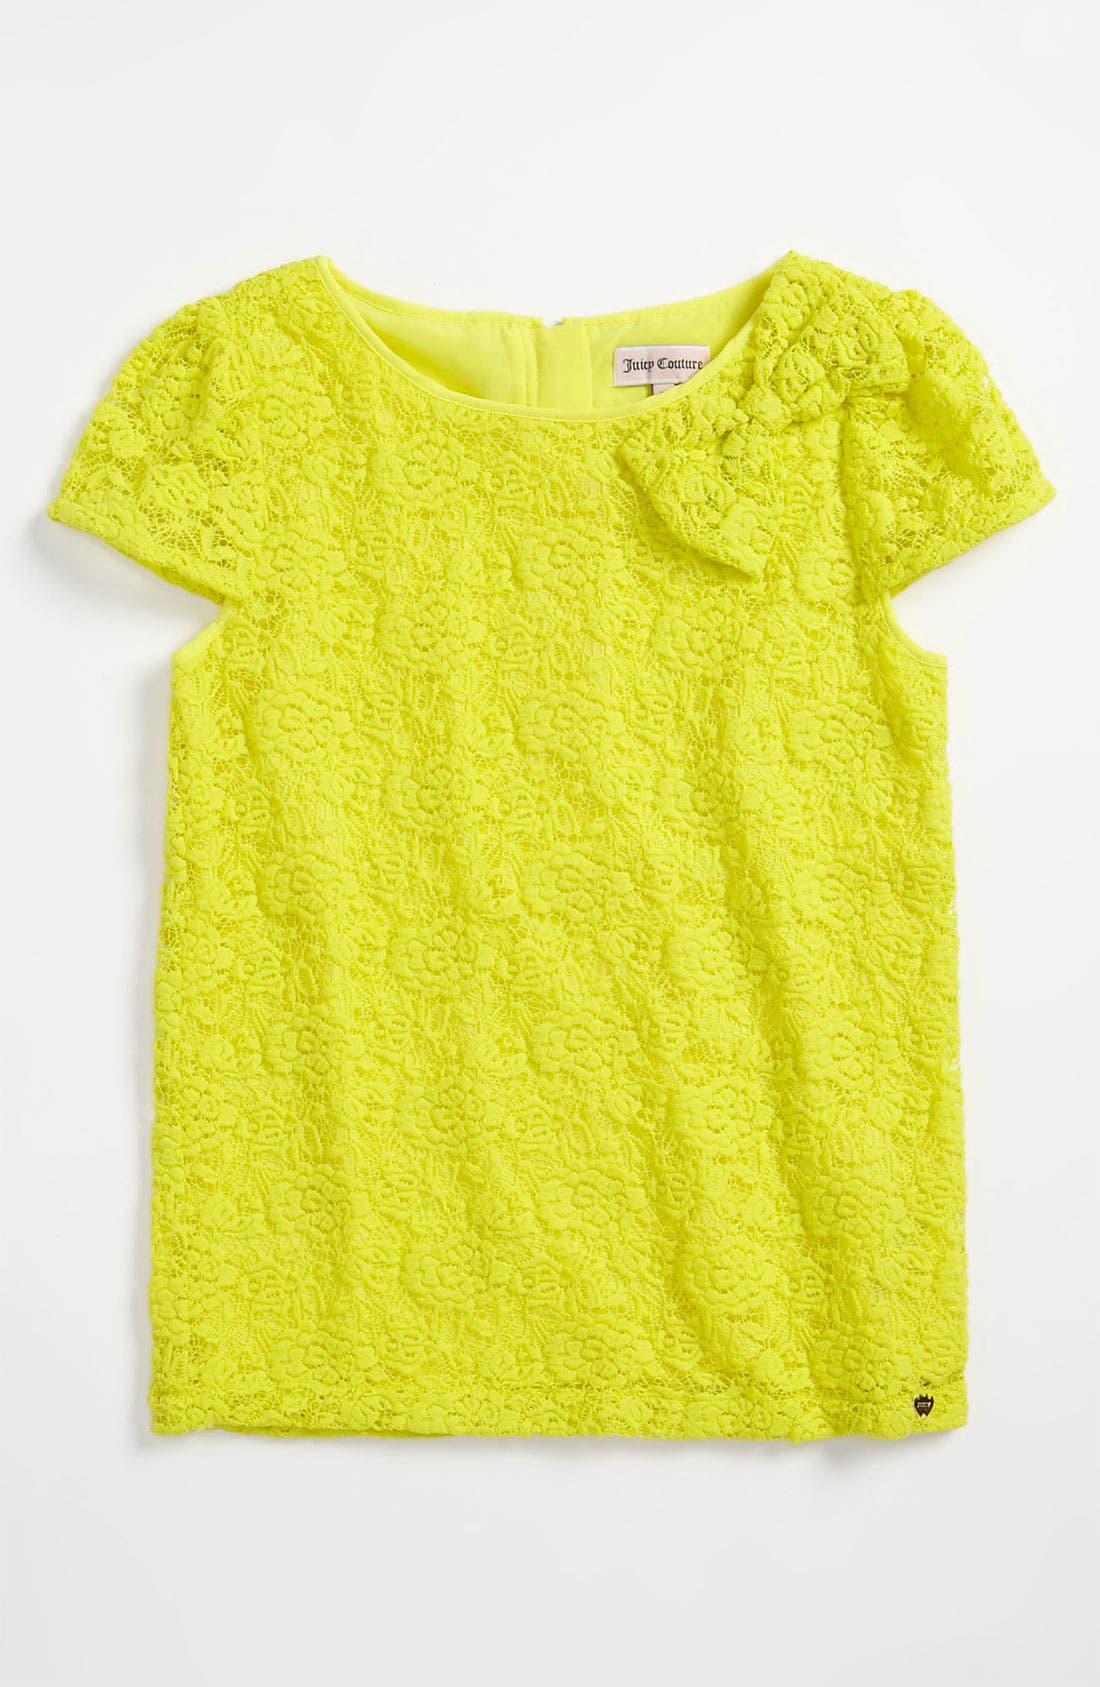 Alternate Image 1 Selected - Juicy Couture Lace Top (Little Girls & Big Girls)